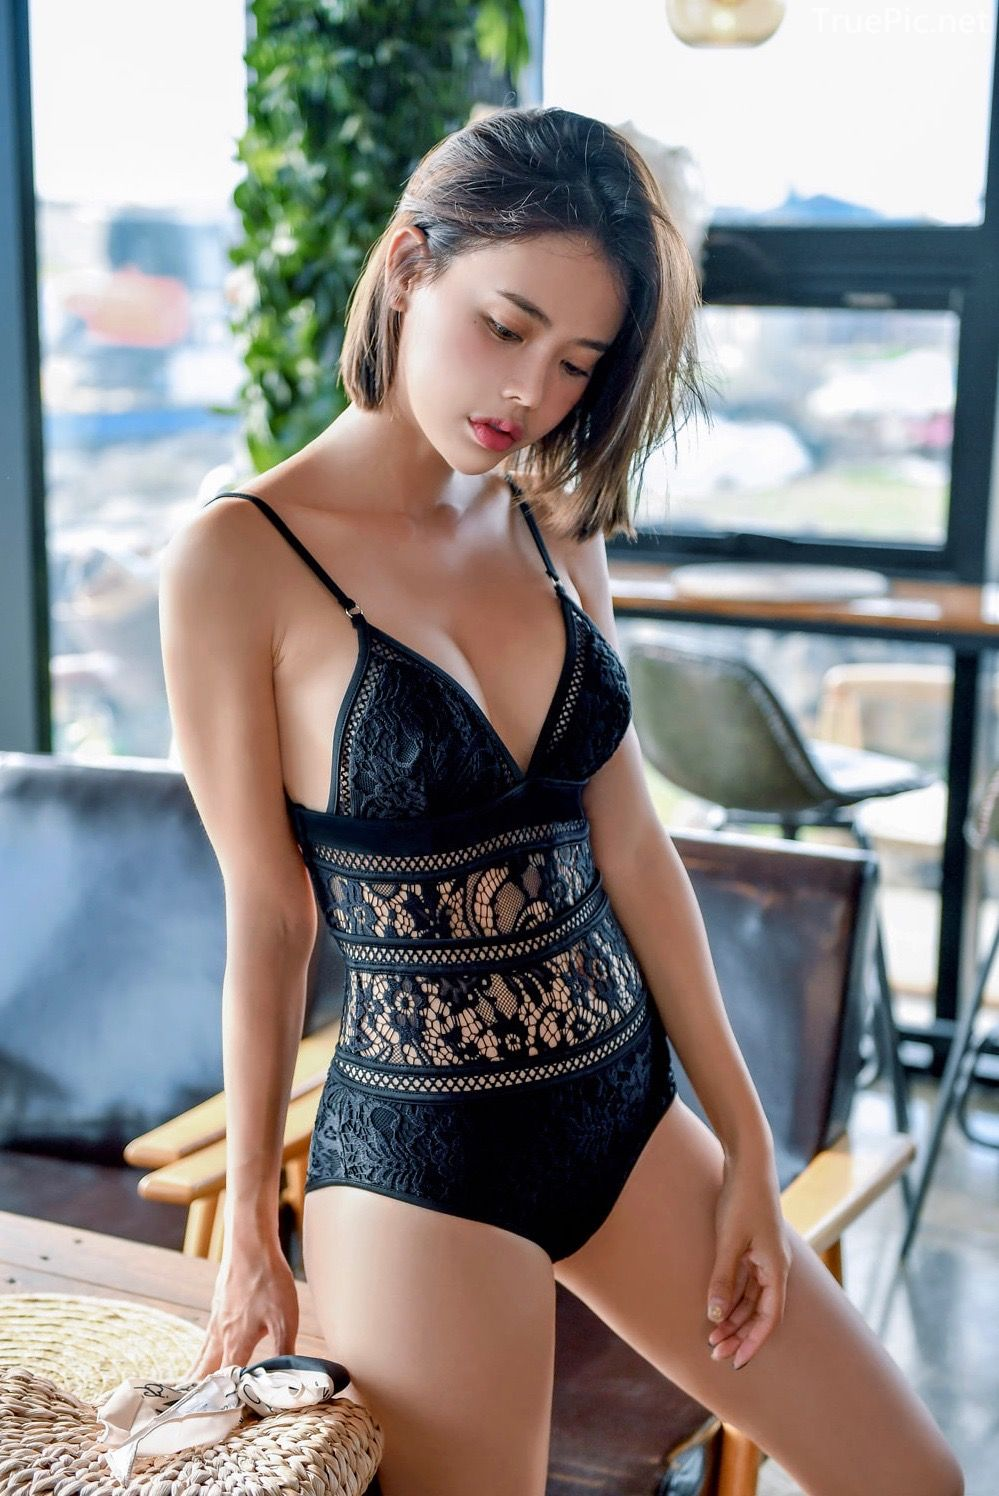 Korean hot model and fashion - Song Yi - Black and White Swimsuit for Summer Vacation - Picture 4